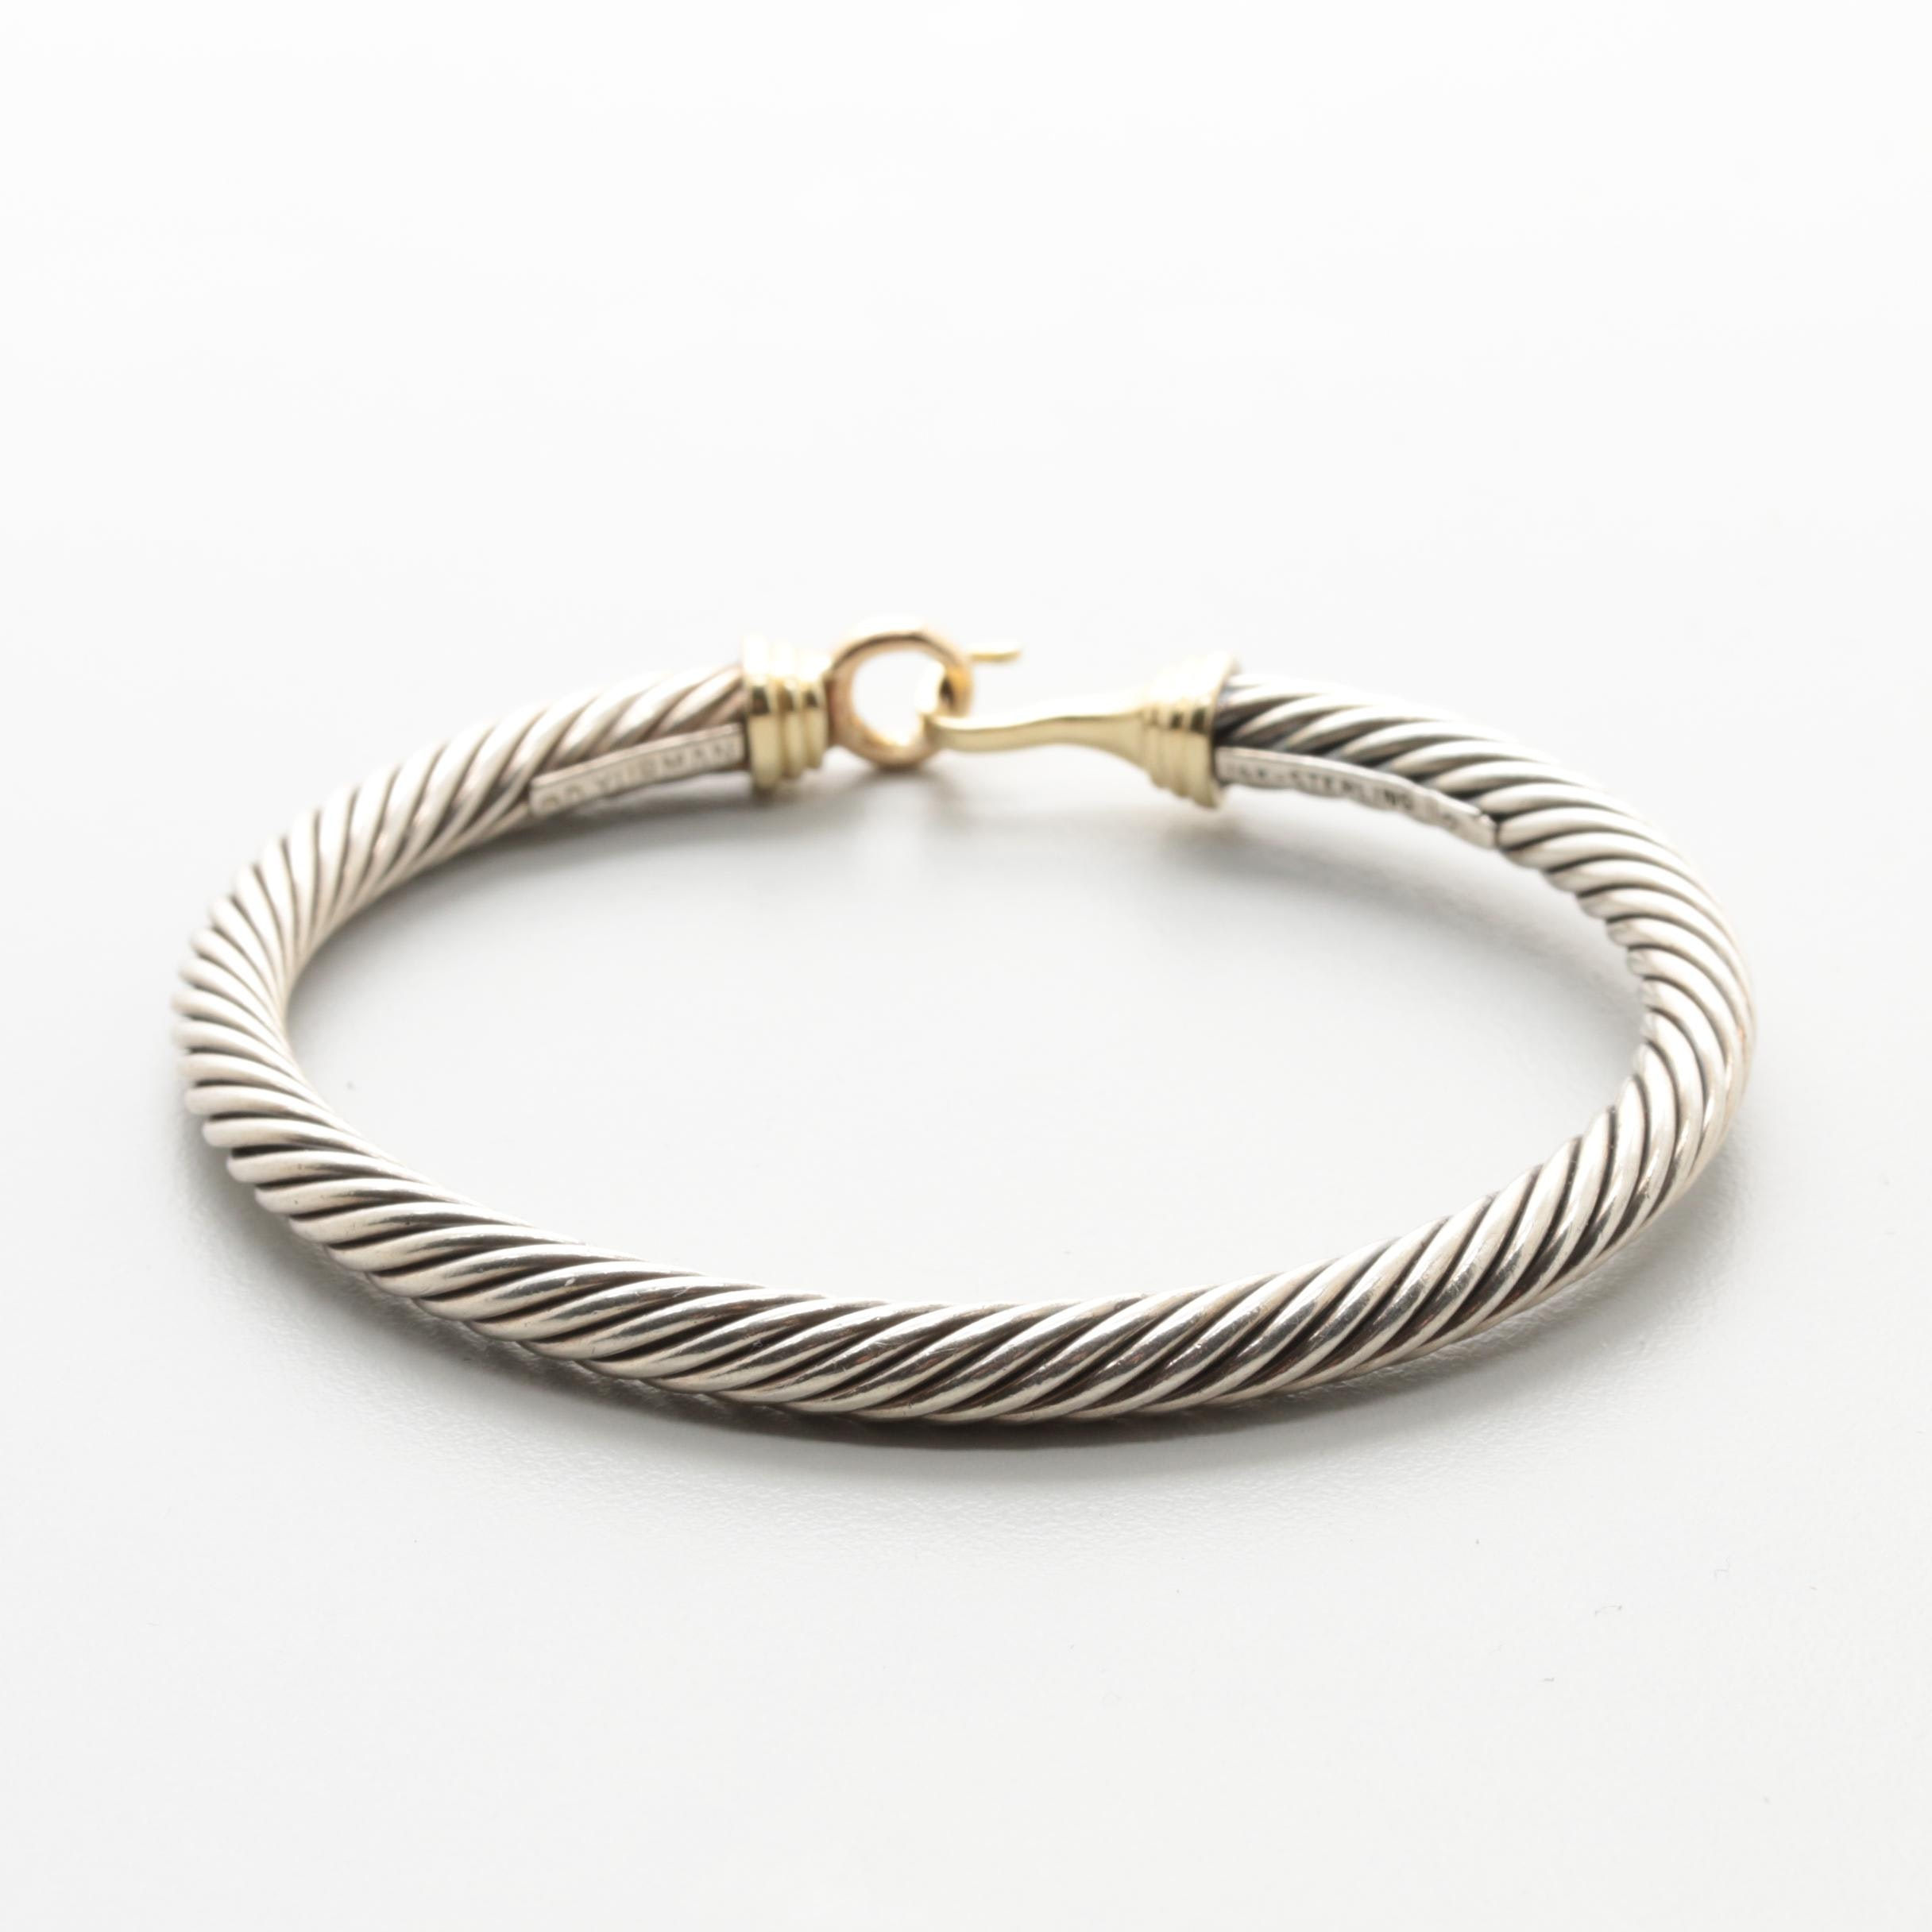 David Yurman Sterling Silver and 14K Yellow Gold Cable Buckle Bracelet